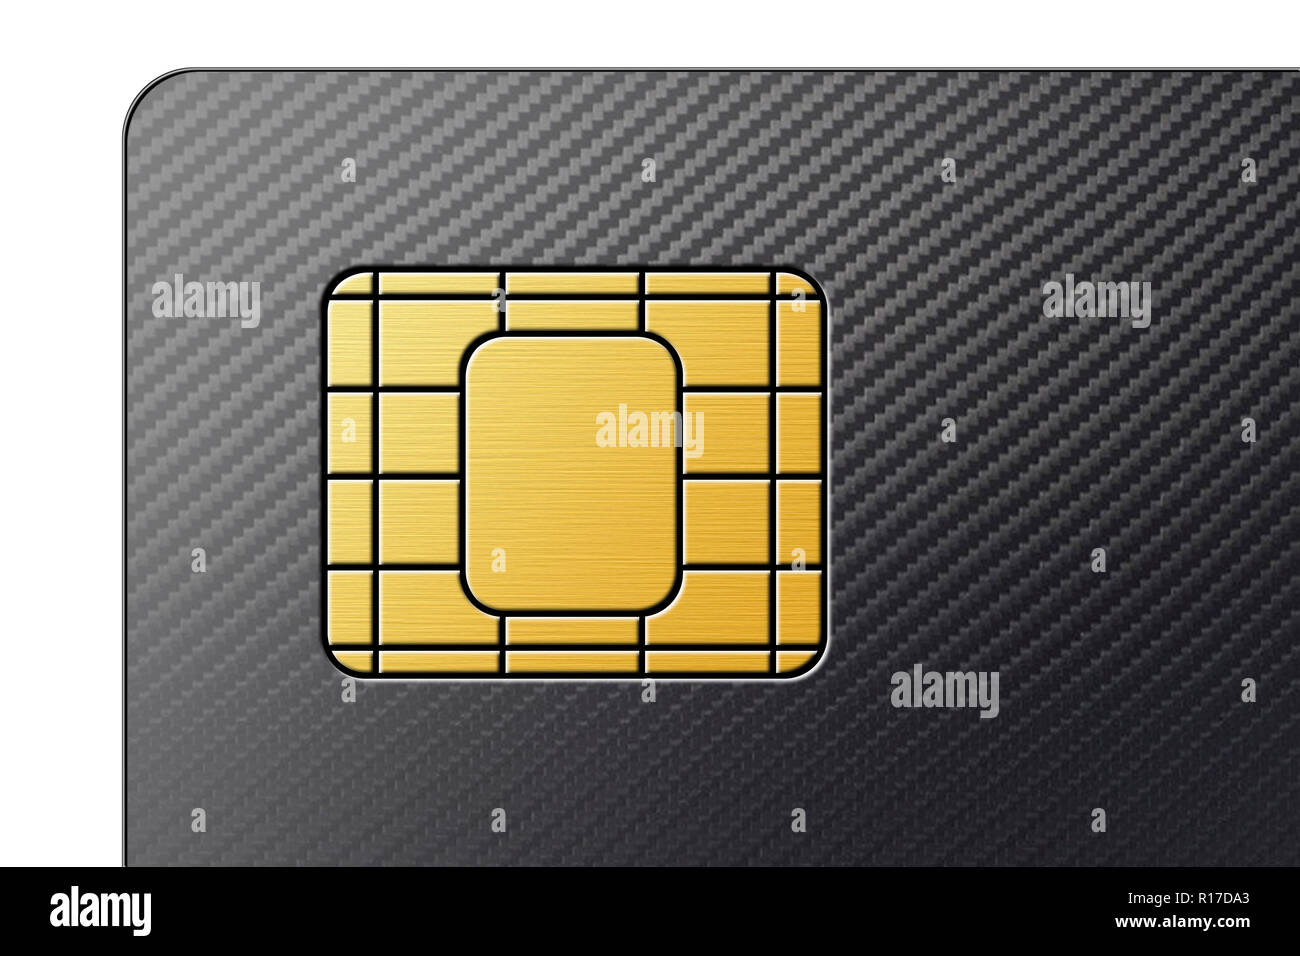 SIM card (subscriber identity module card) close up detail of corner - Stock Image